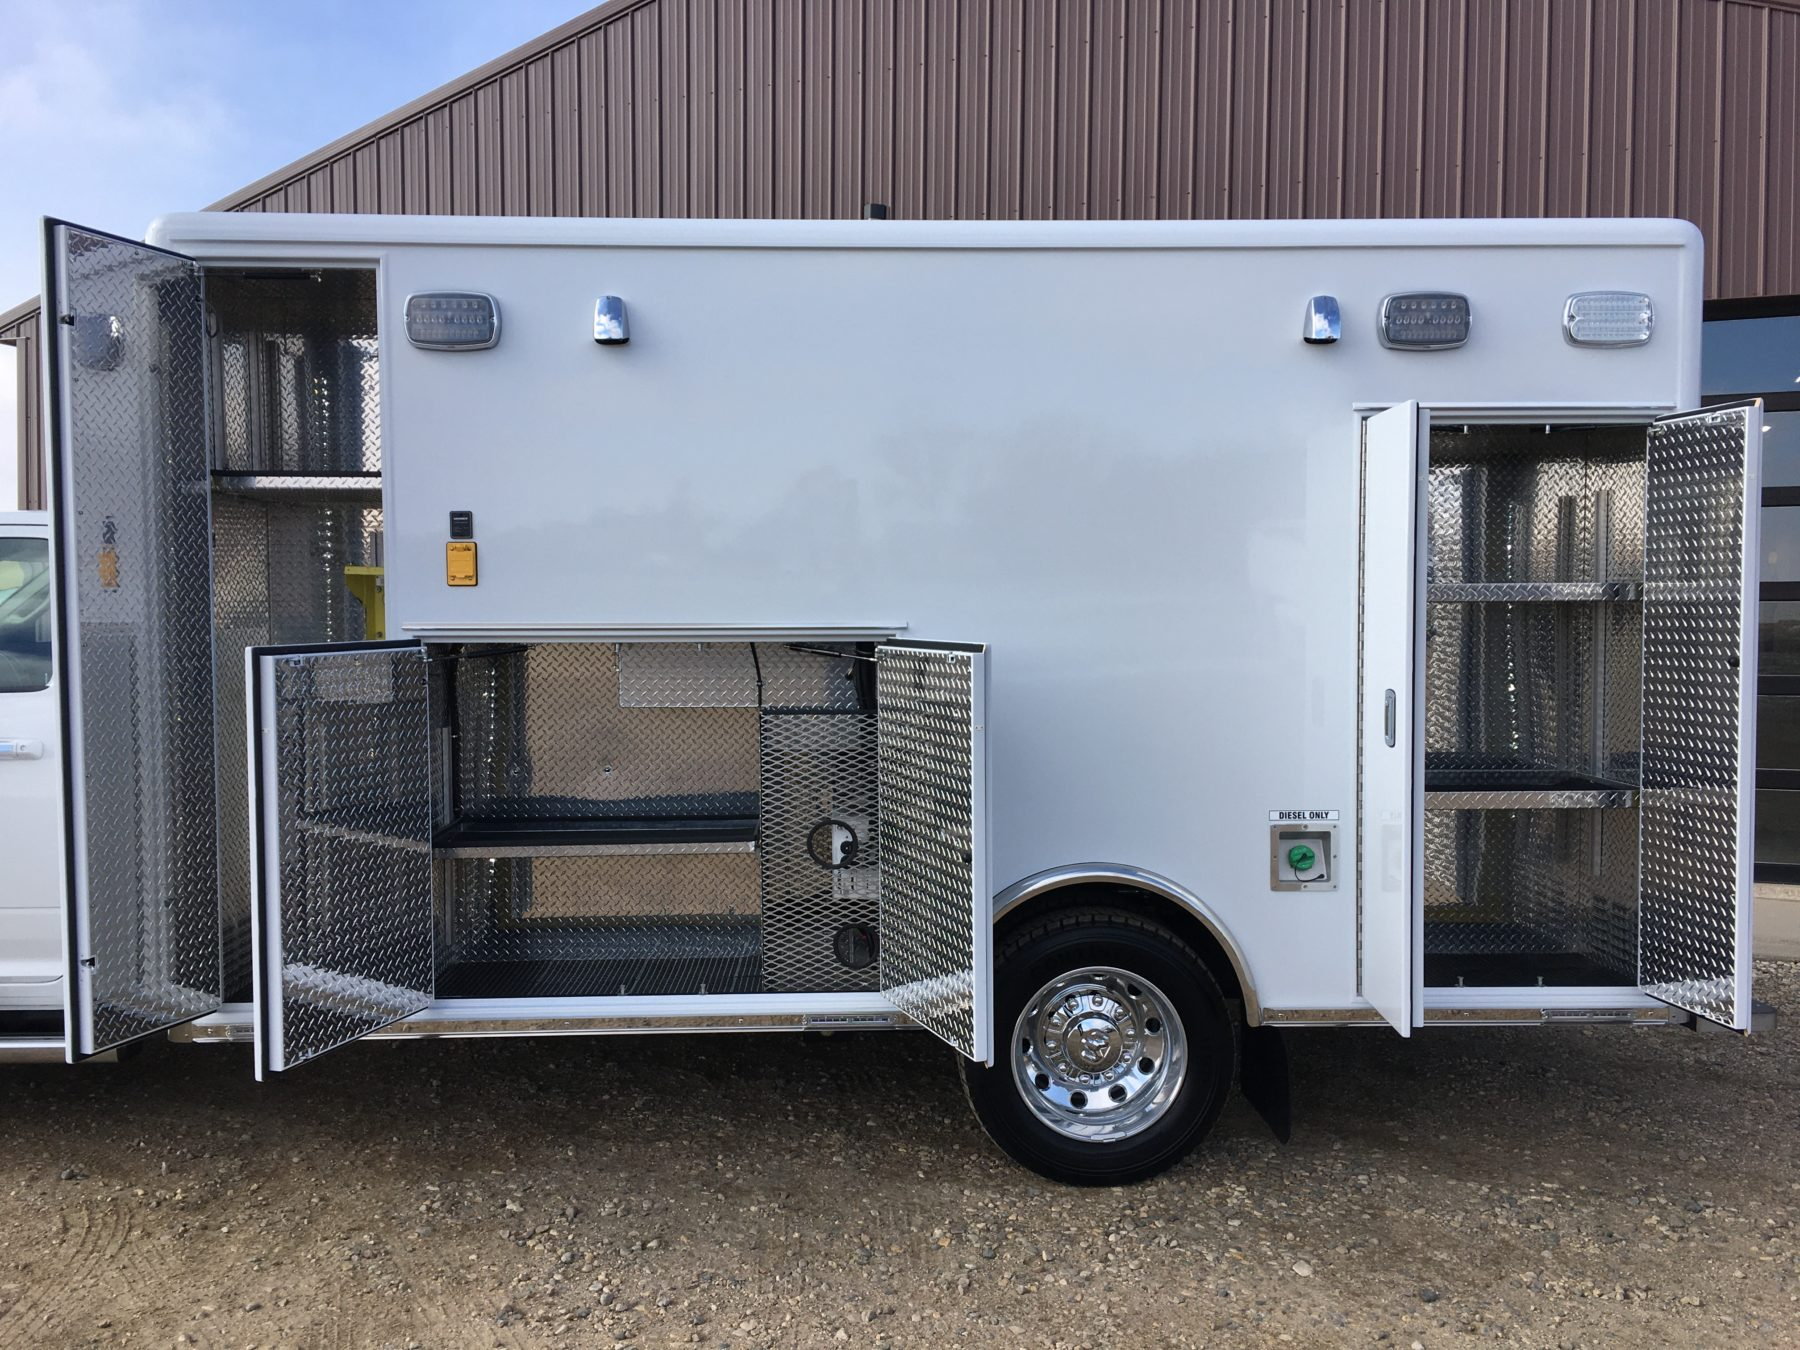 2019 Ram 4500 4x4 Heavy Duty Ambulance For Sale – Picture 7